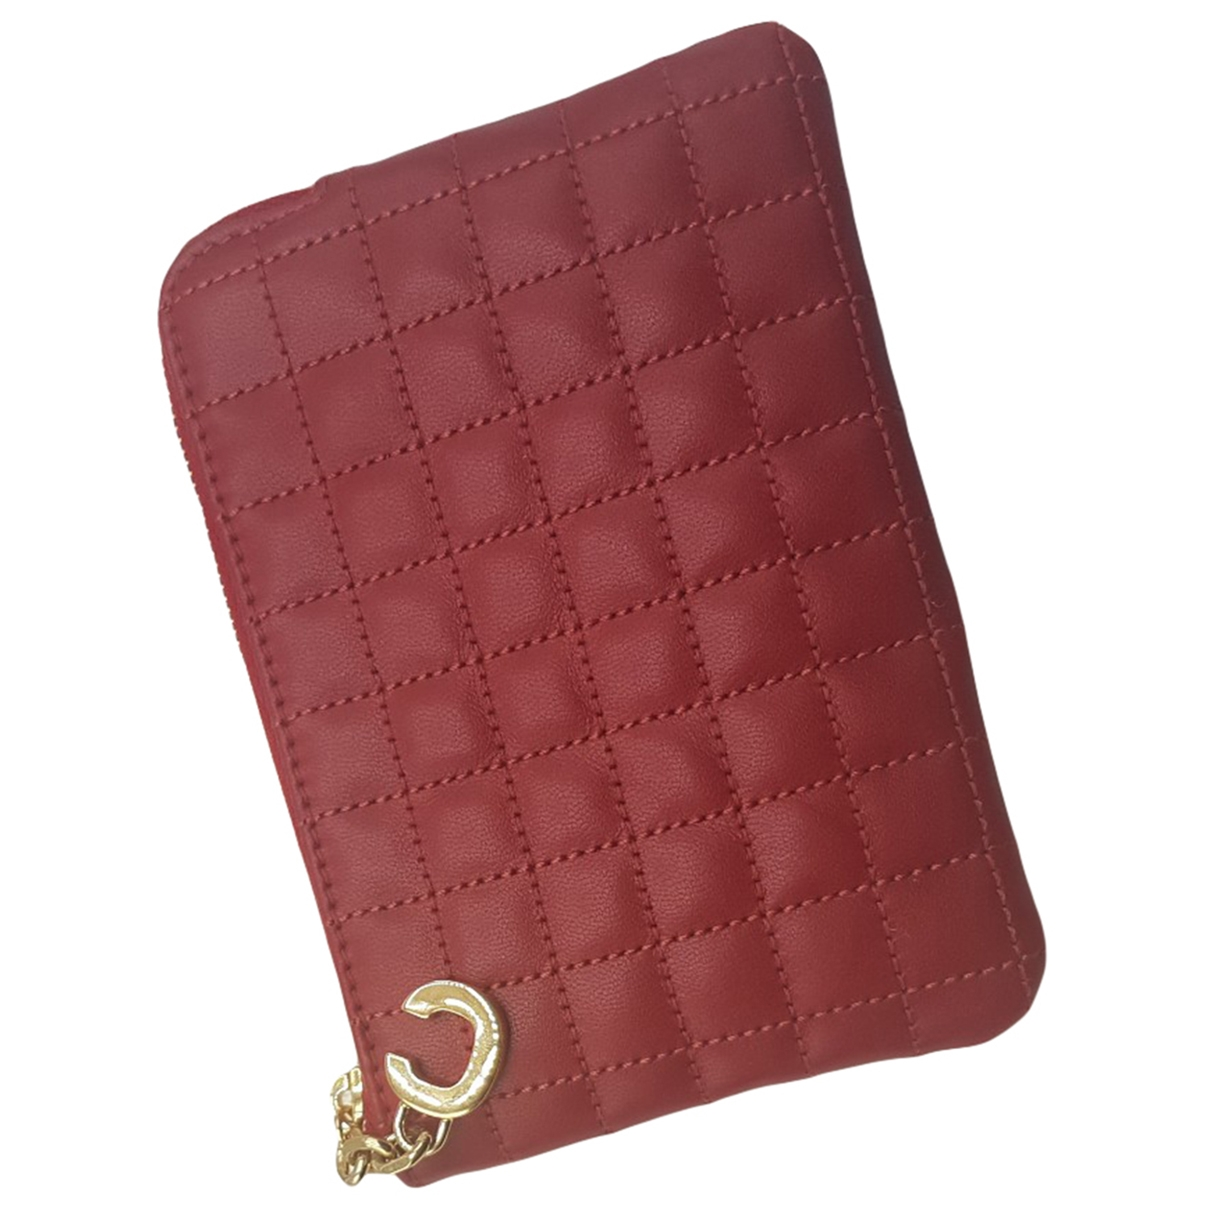 Celine \N Red Leather Purses, wallet & cases for Women \N